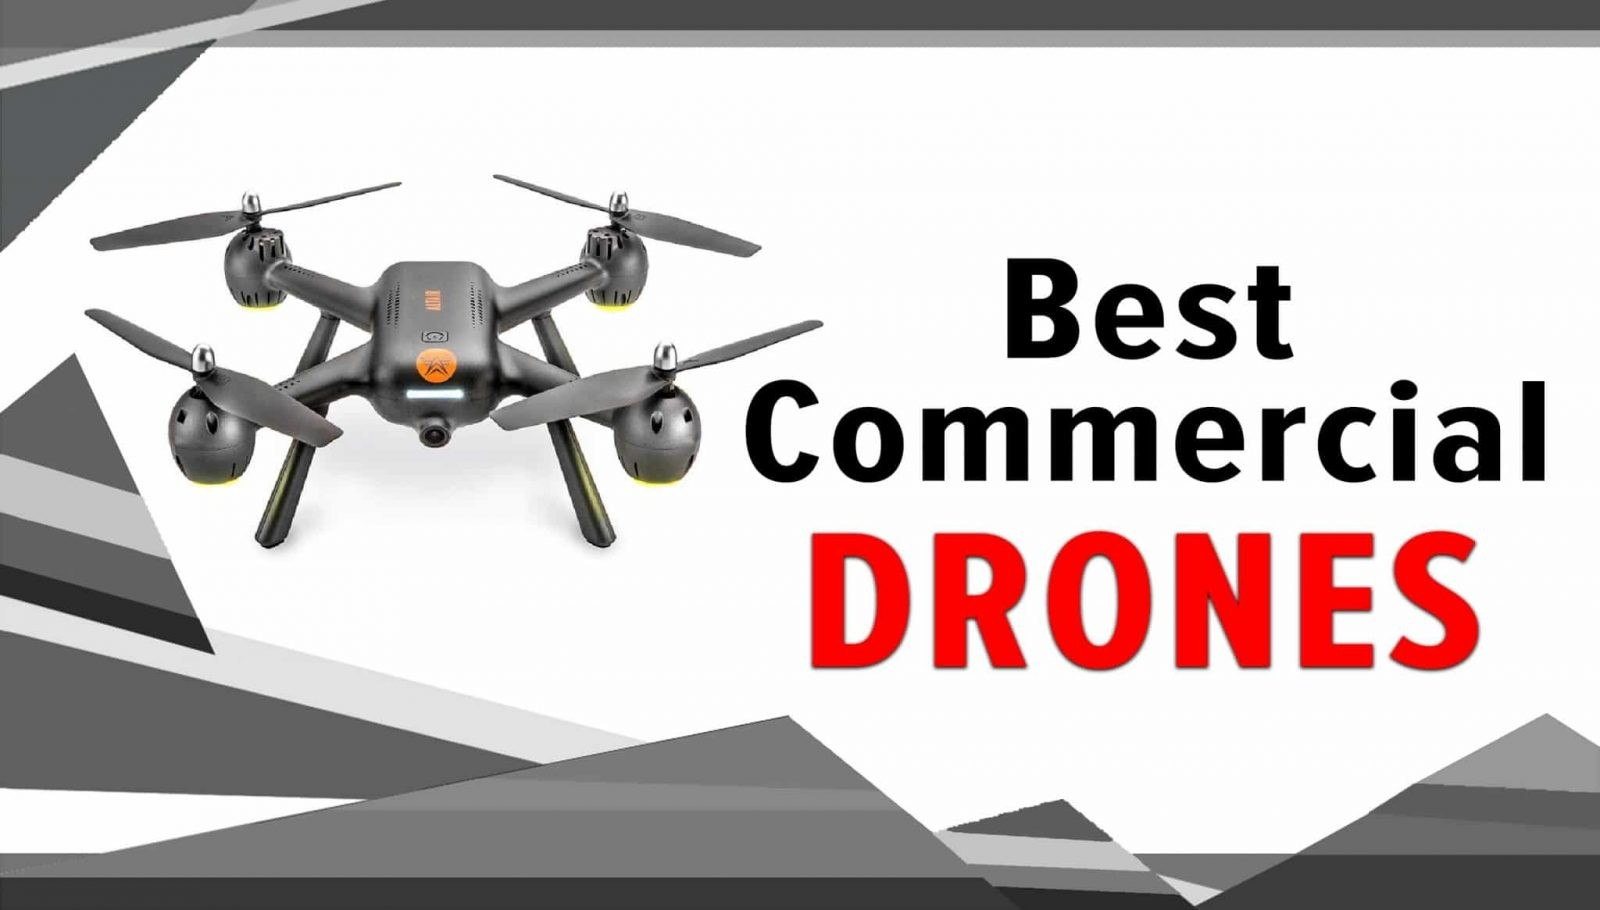 Best Commercial Drones for Professional and Industrial Use